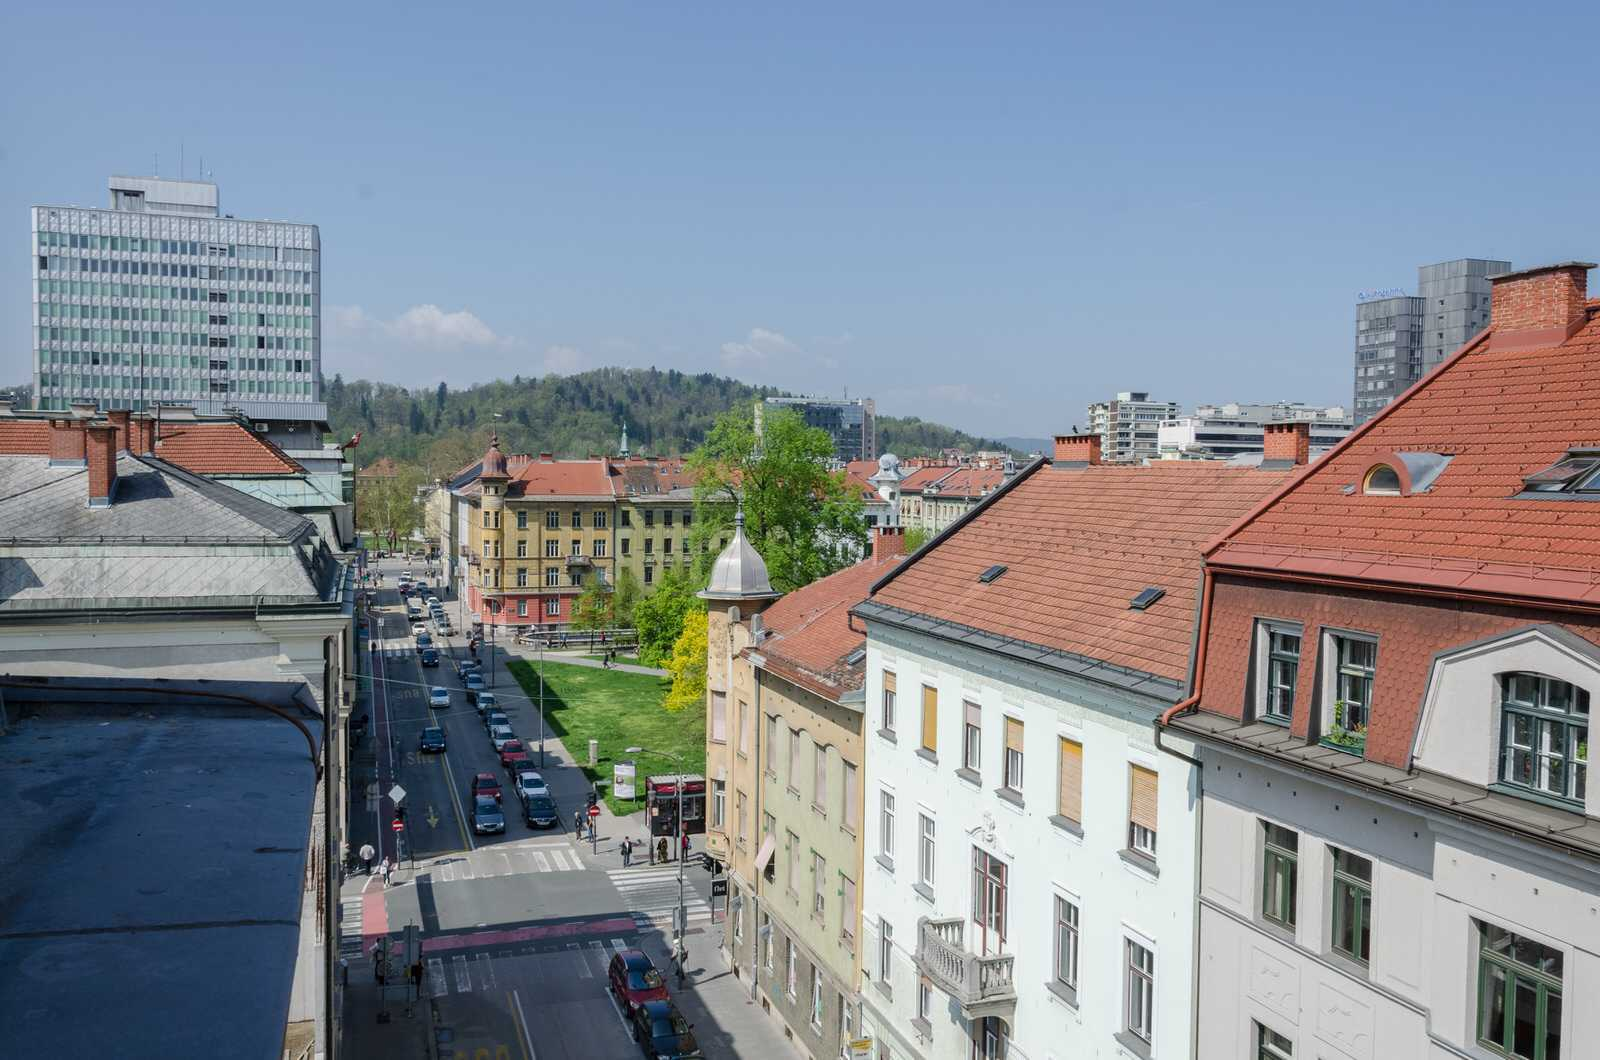 Ljubljana rental apartment Dalmatinova - street and city view from the living room.